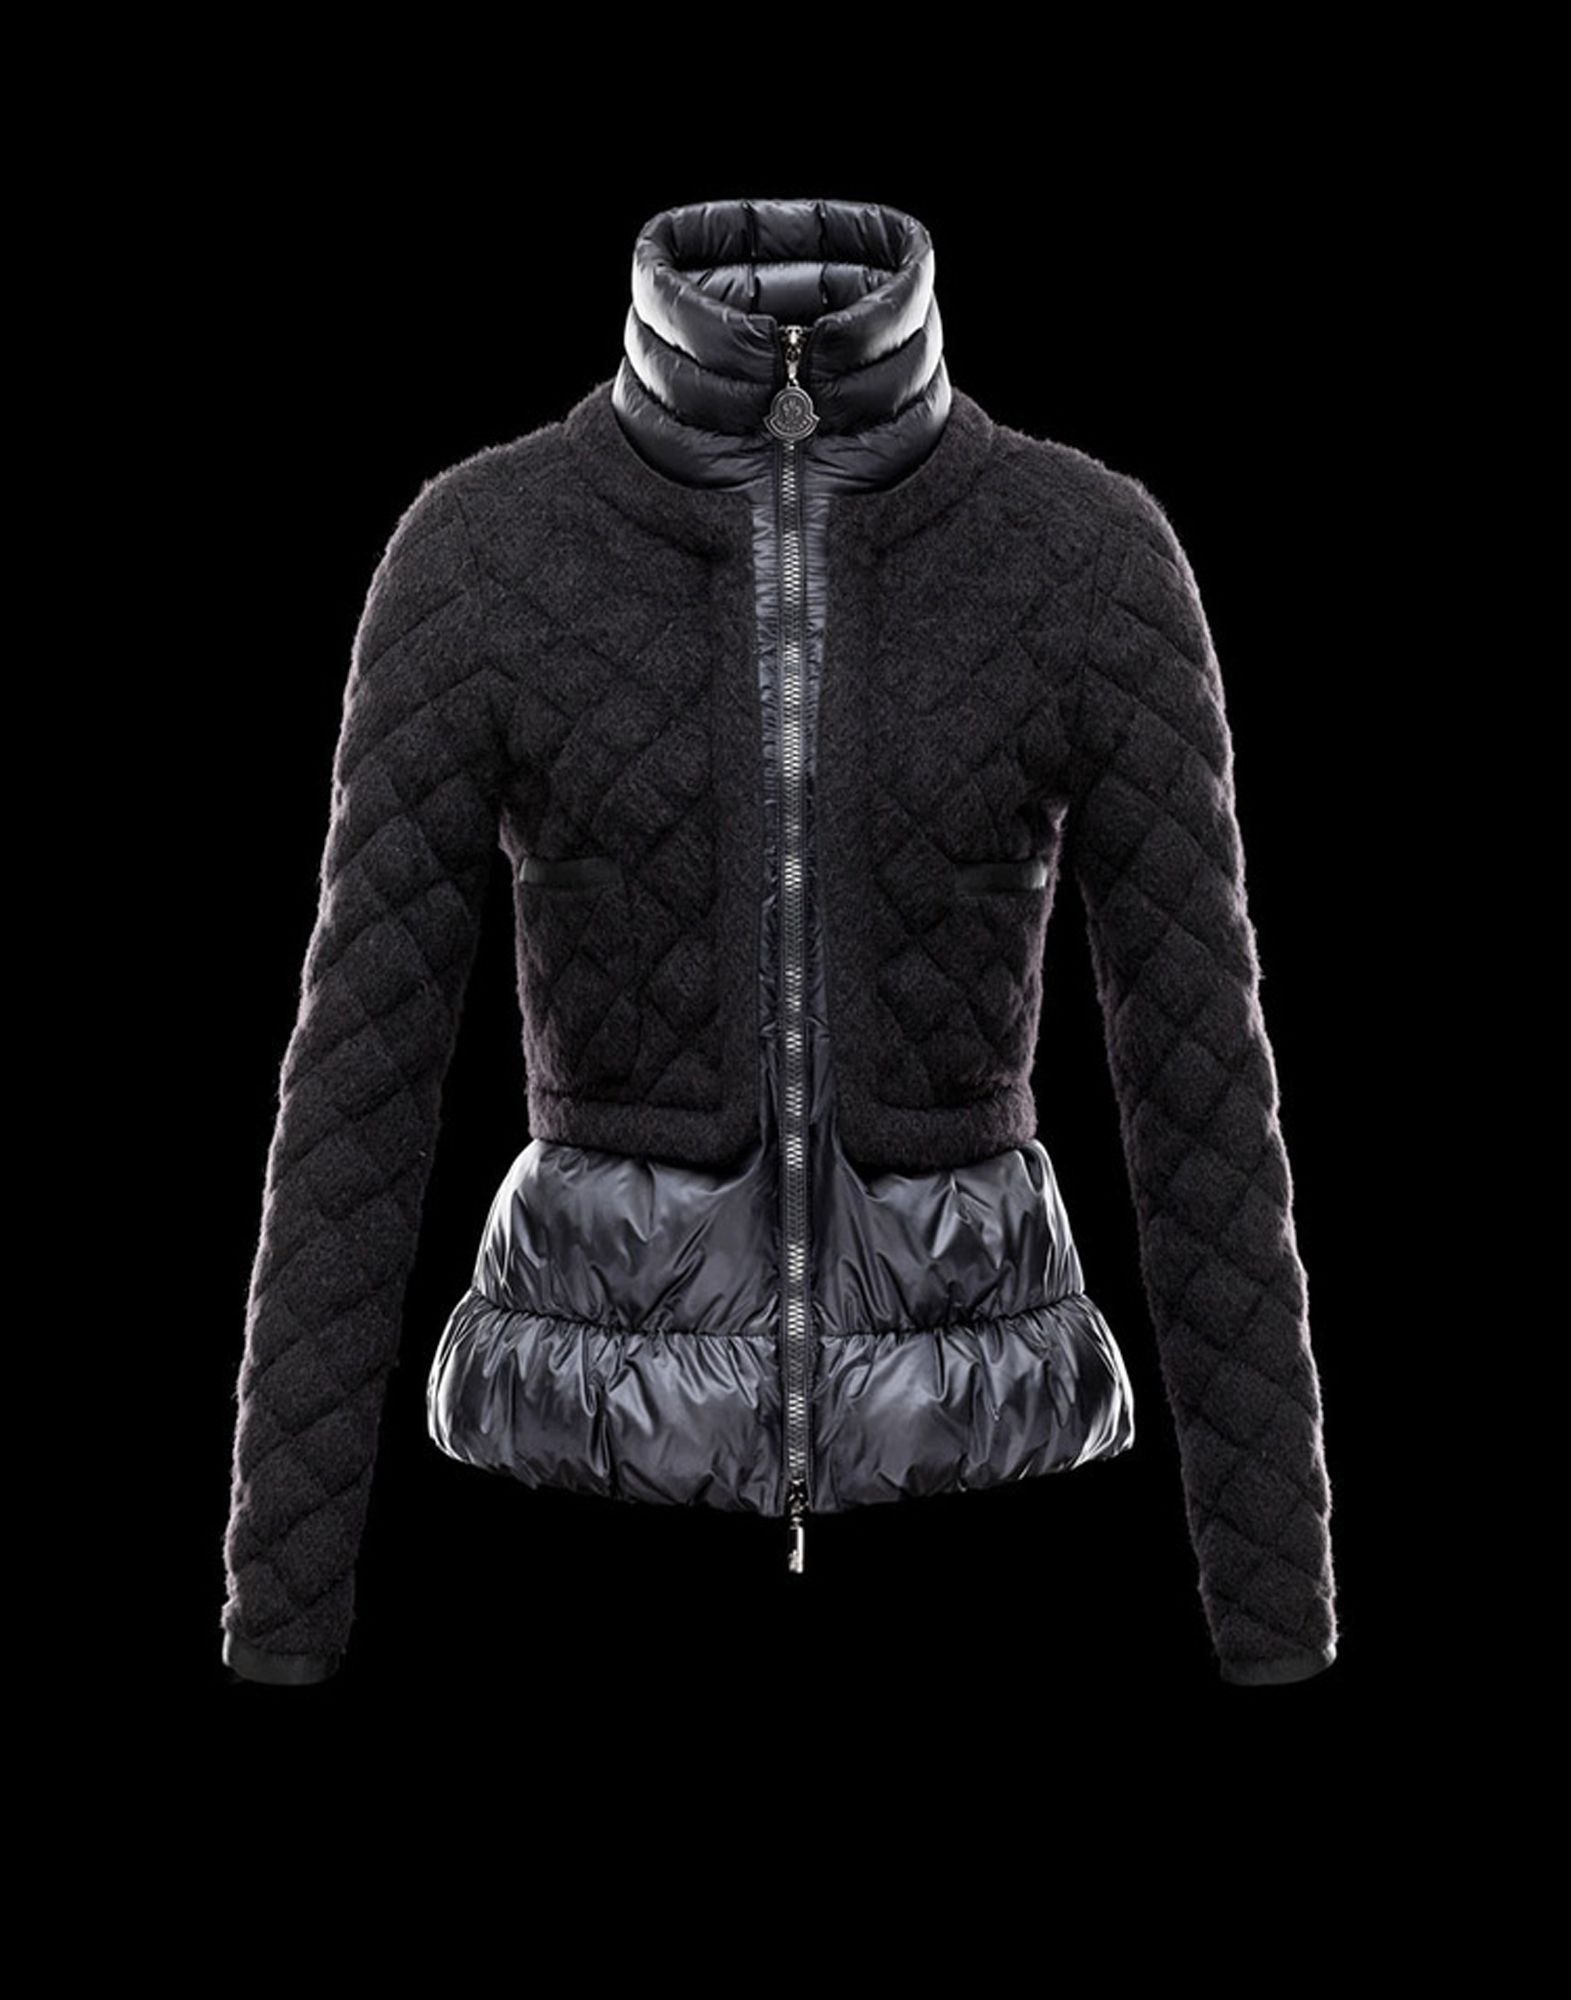 5ad67f0cde94 Moncler Womens Coat-only  1,020.00   360.00 Save  65% off  http   www. moncler-outletstore.com moncler-womens-coat.html